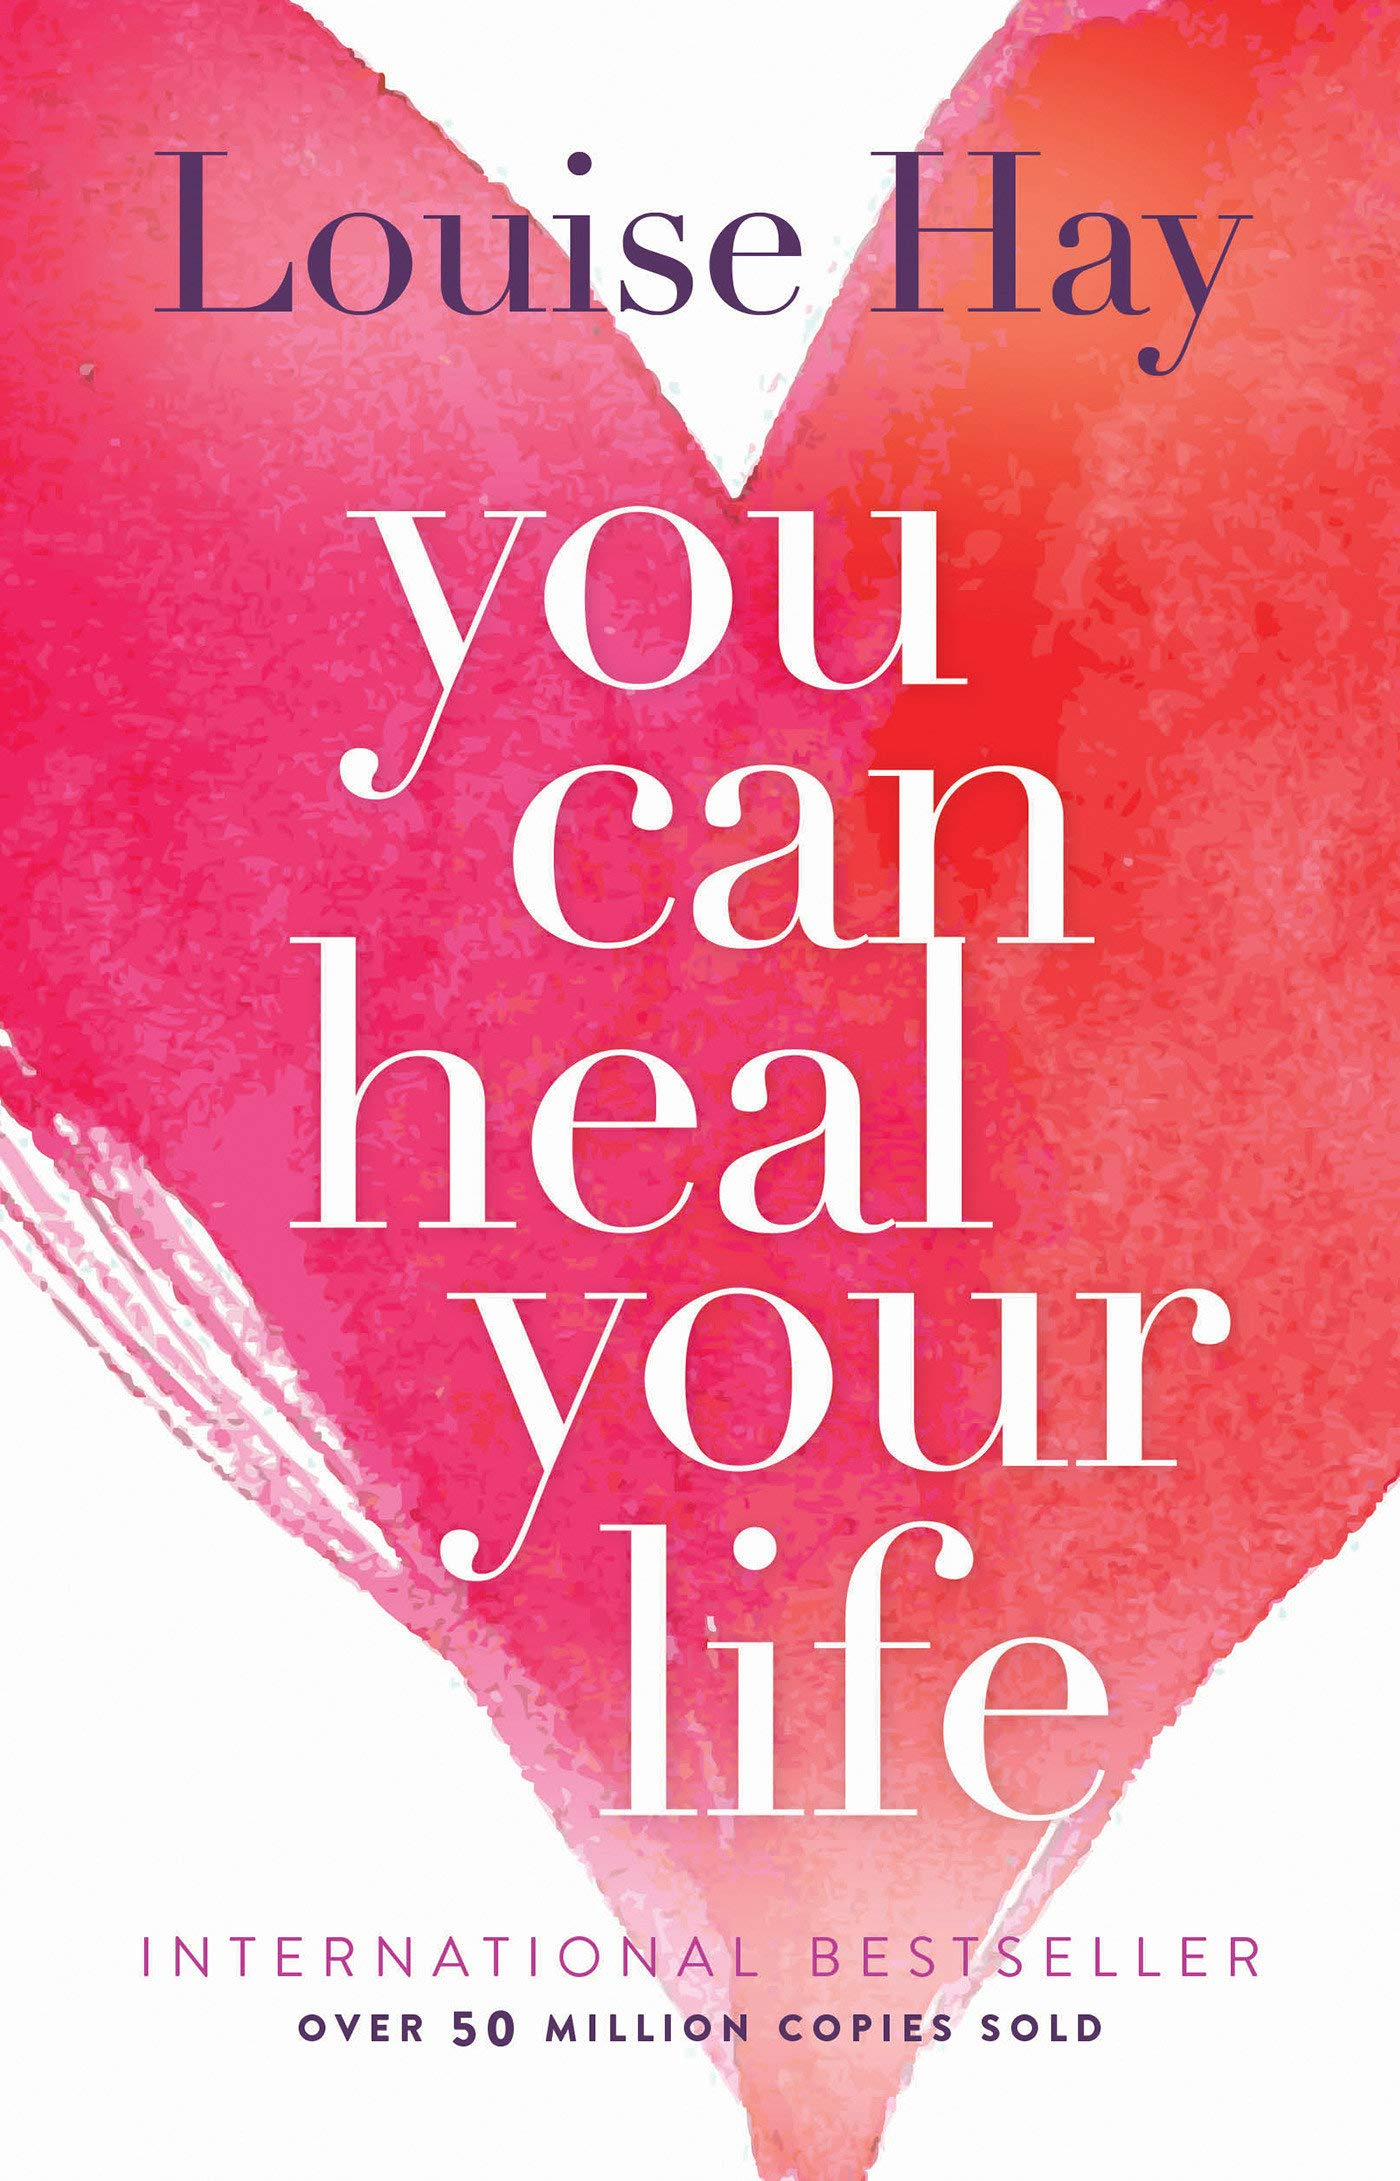 'You Can Heal Your Life' by Louise Hay